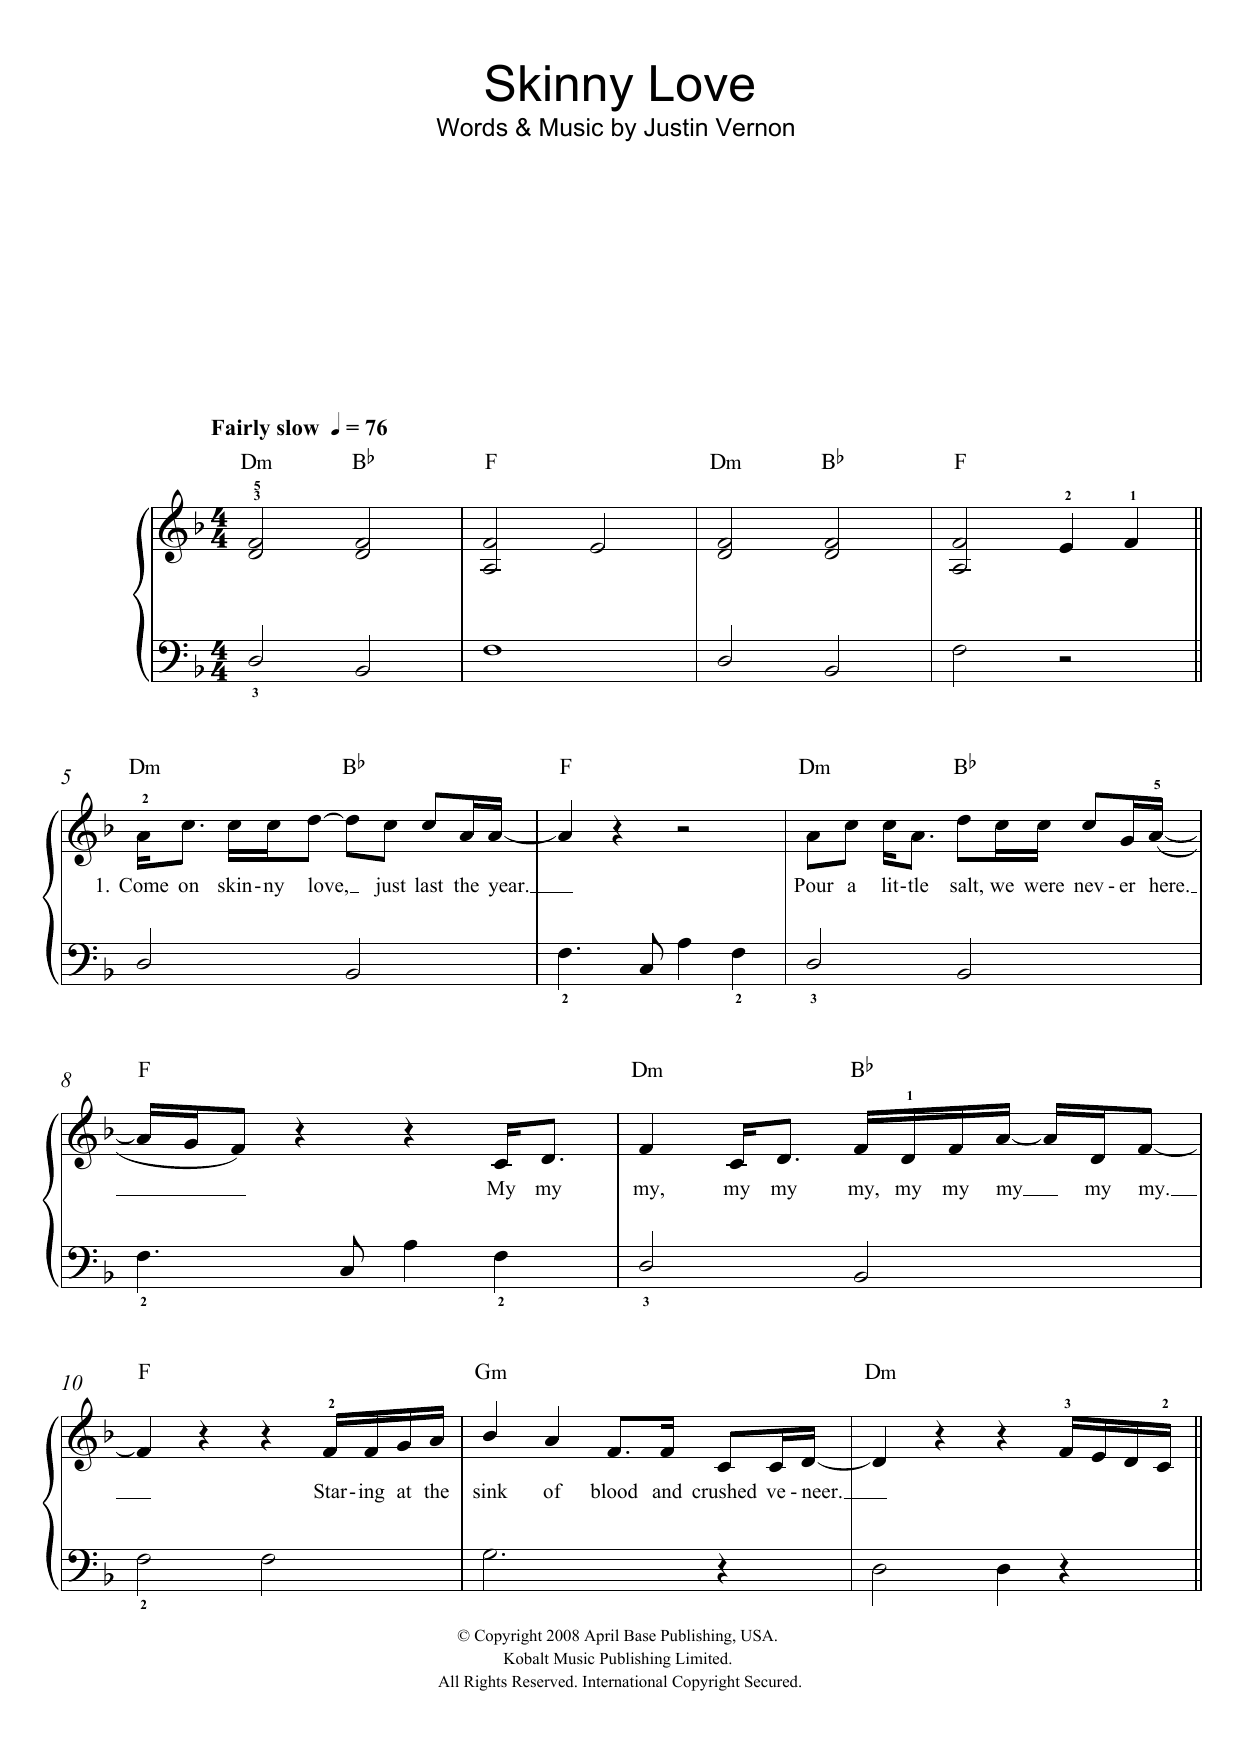 Piano skinny love piano tabs : Skinny Love | Sheet Music Direct